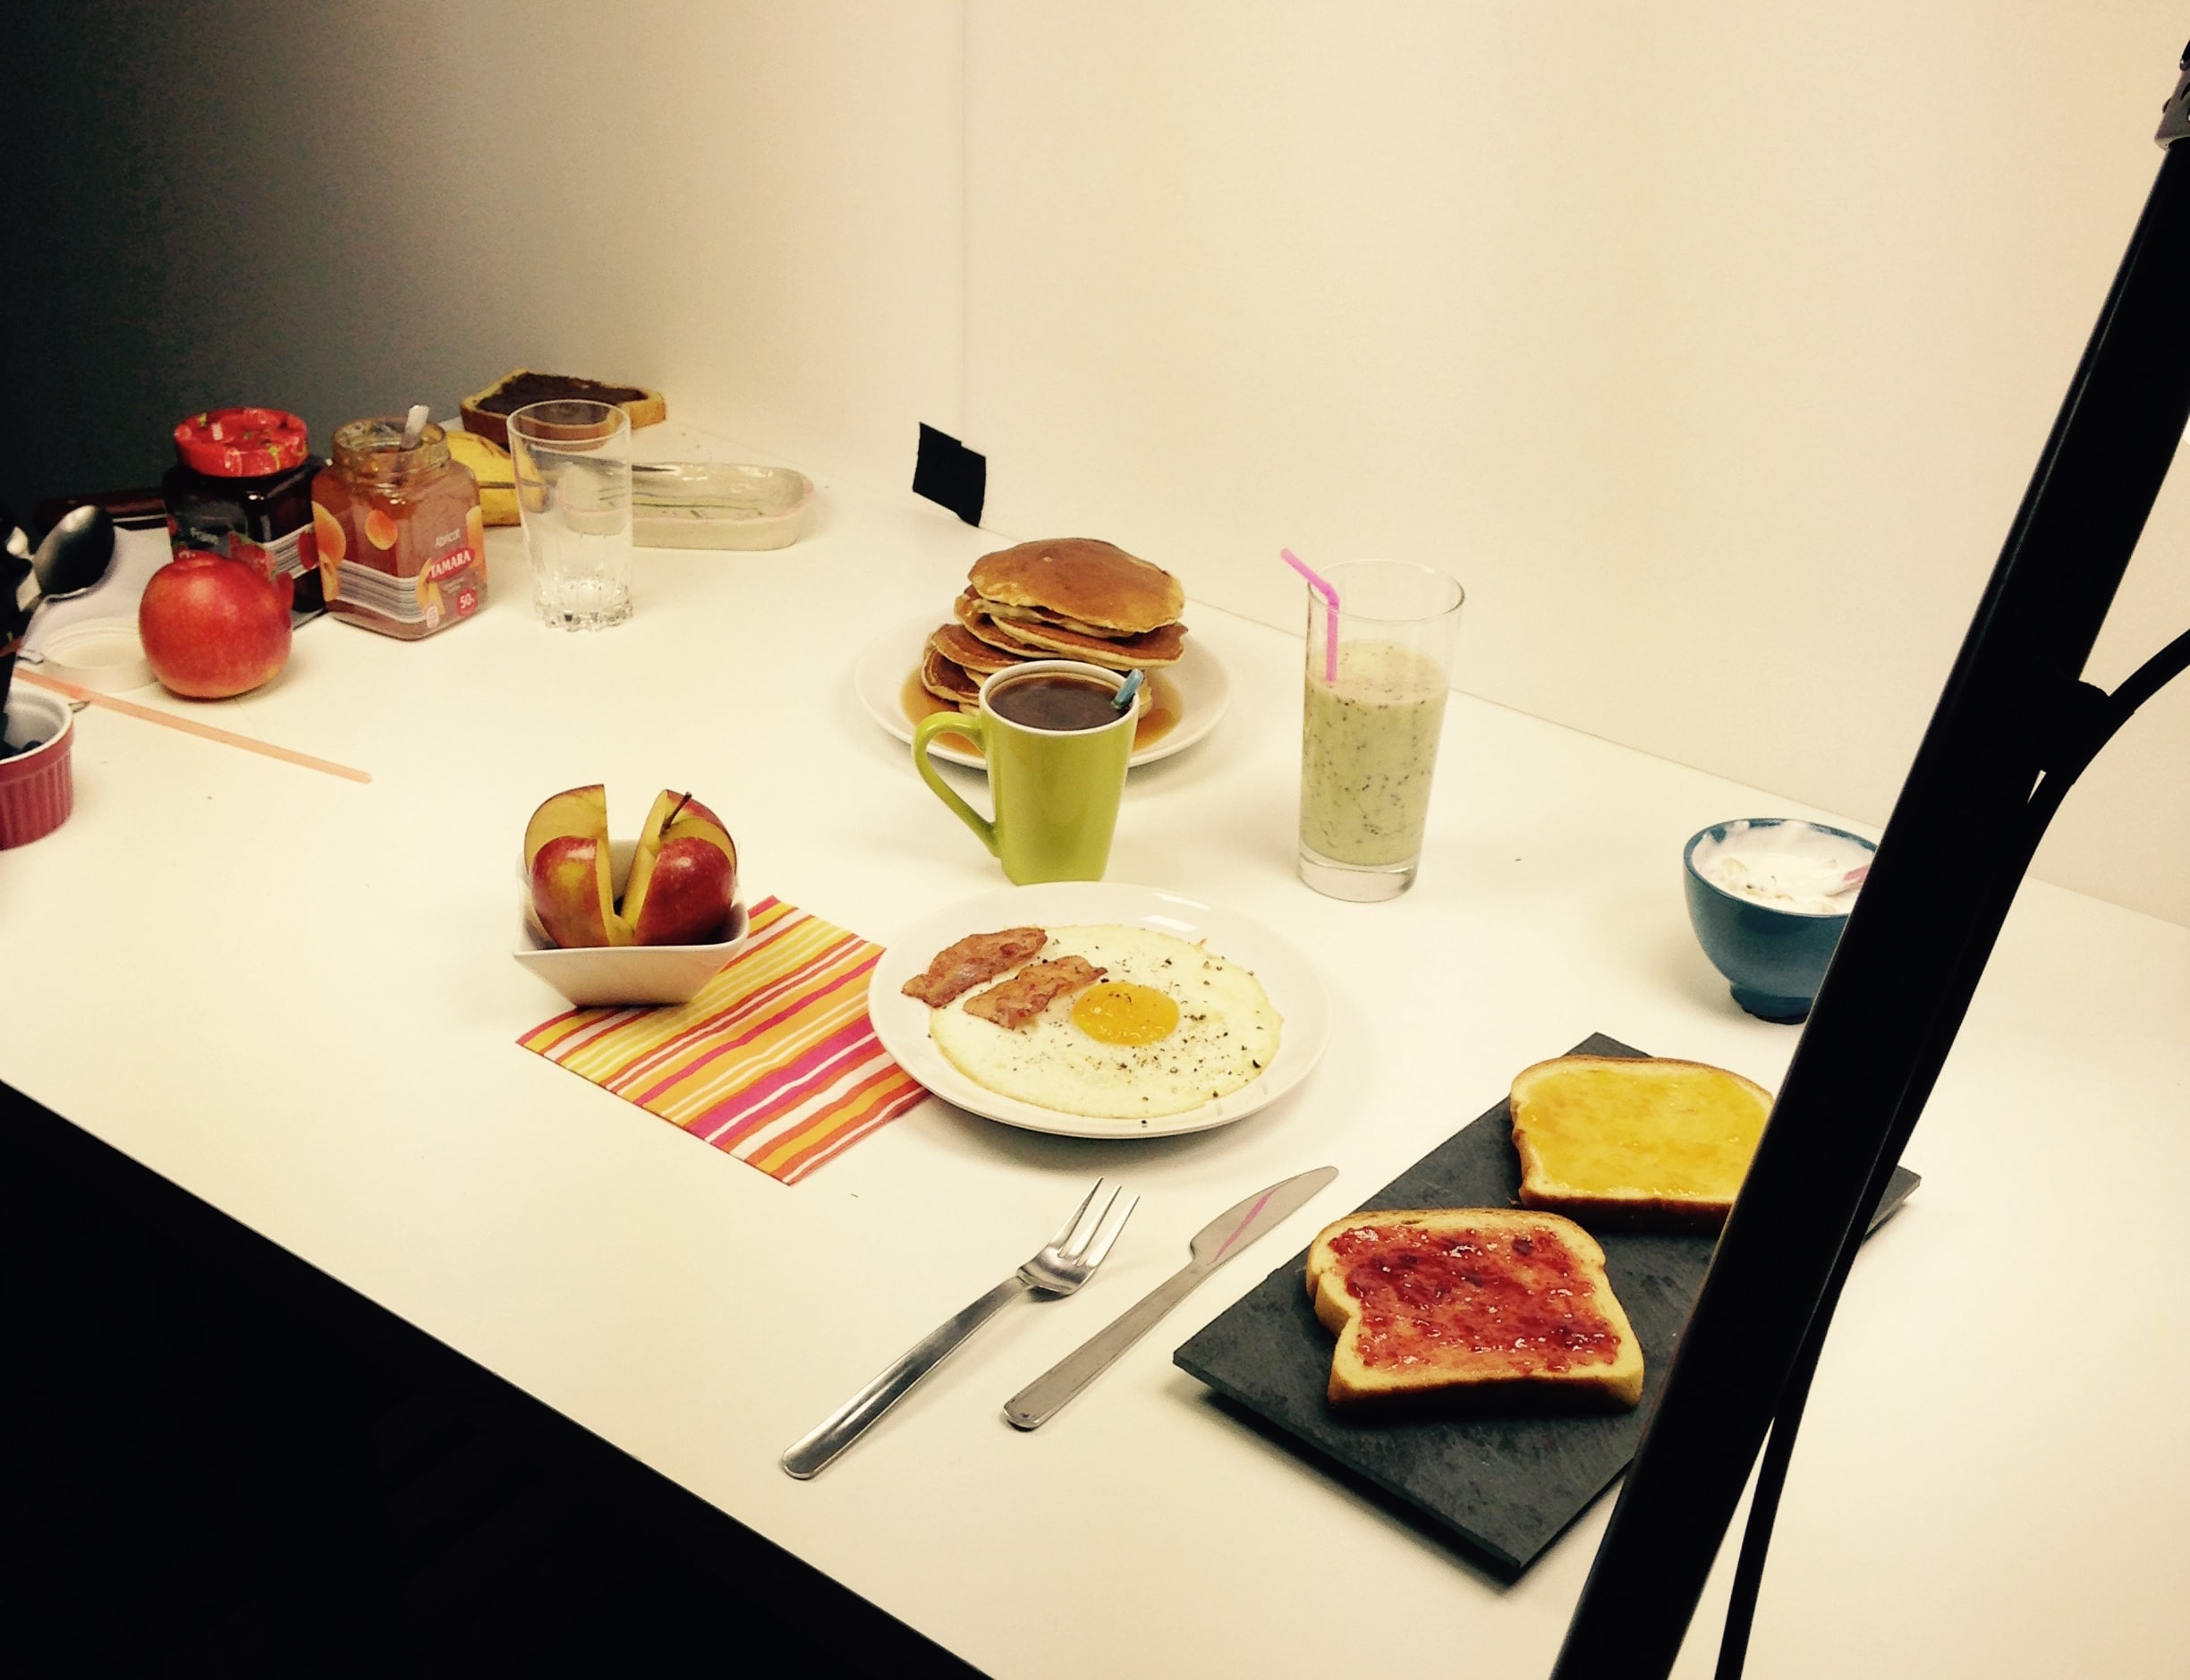 Creative Breakfast 3